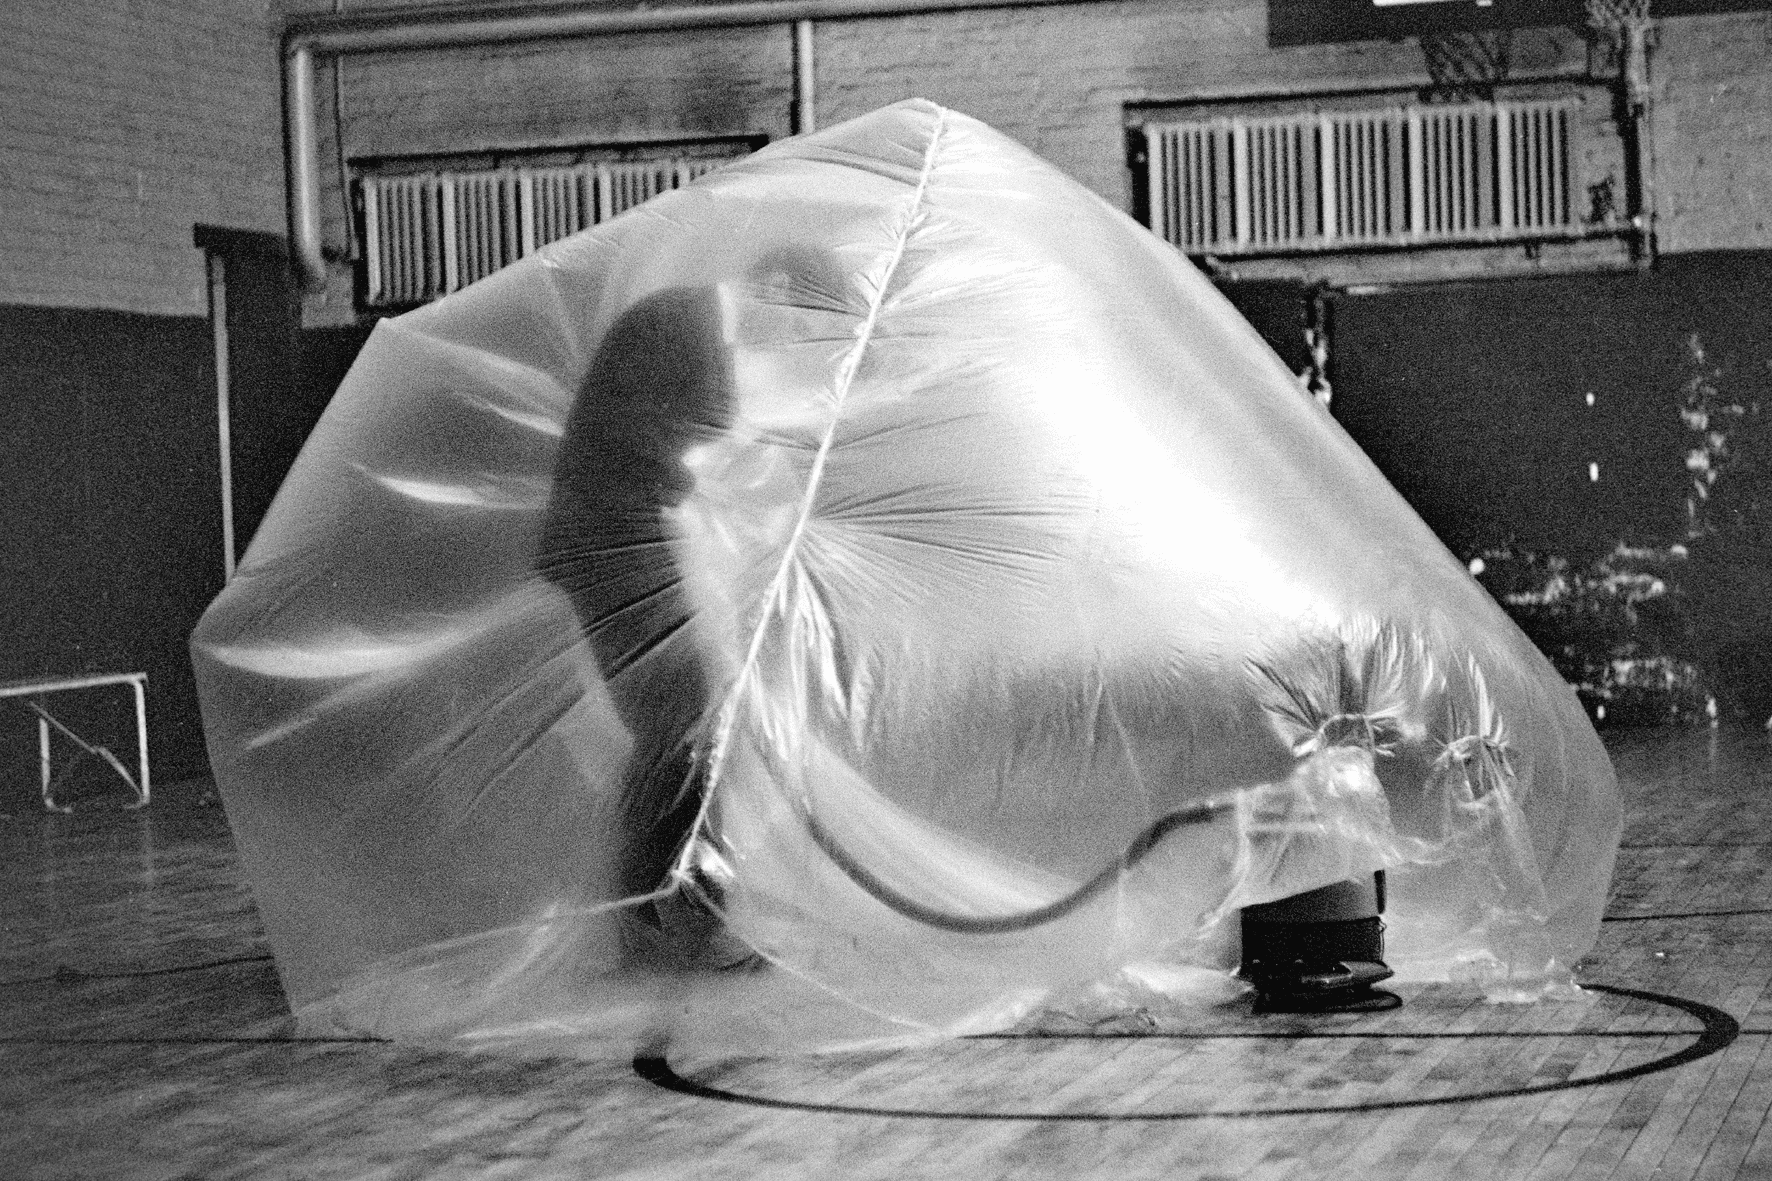 Inventing Dance : In and Around Judson, New York 1959–1970